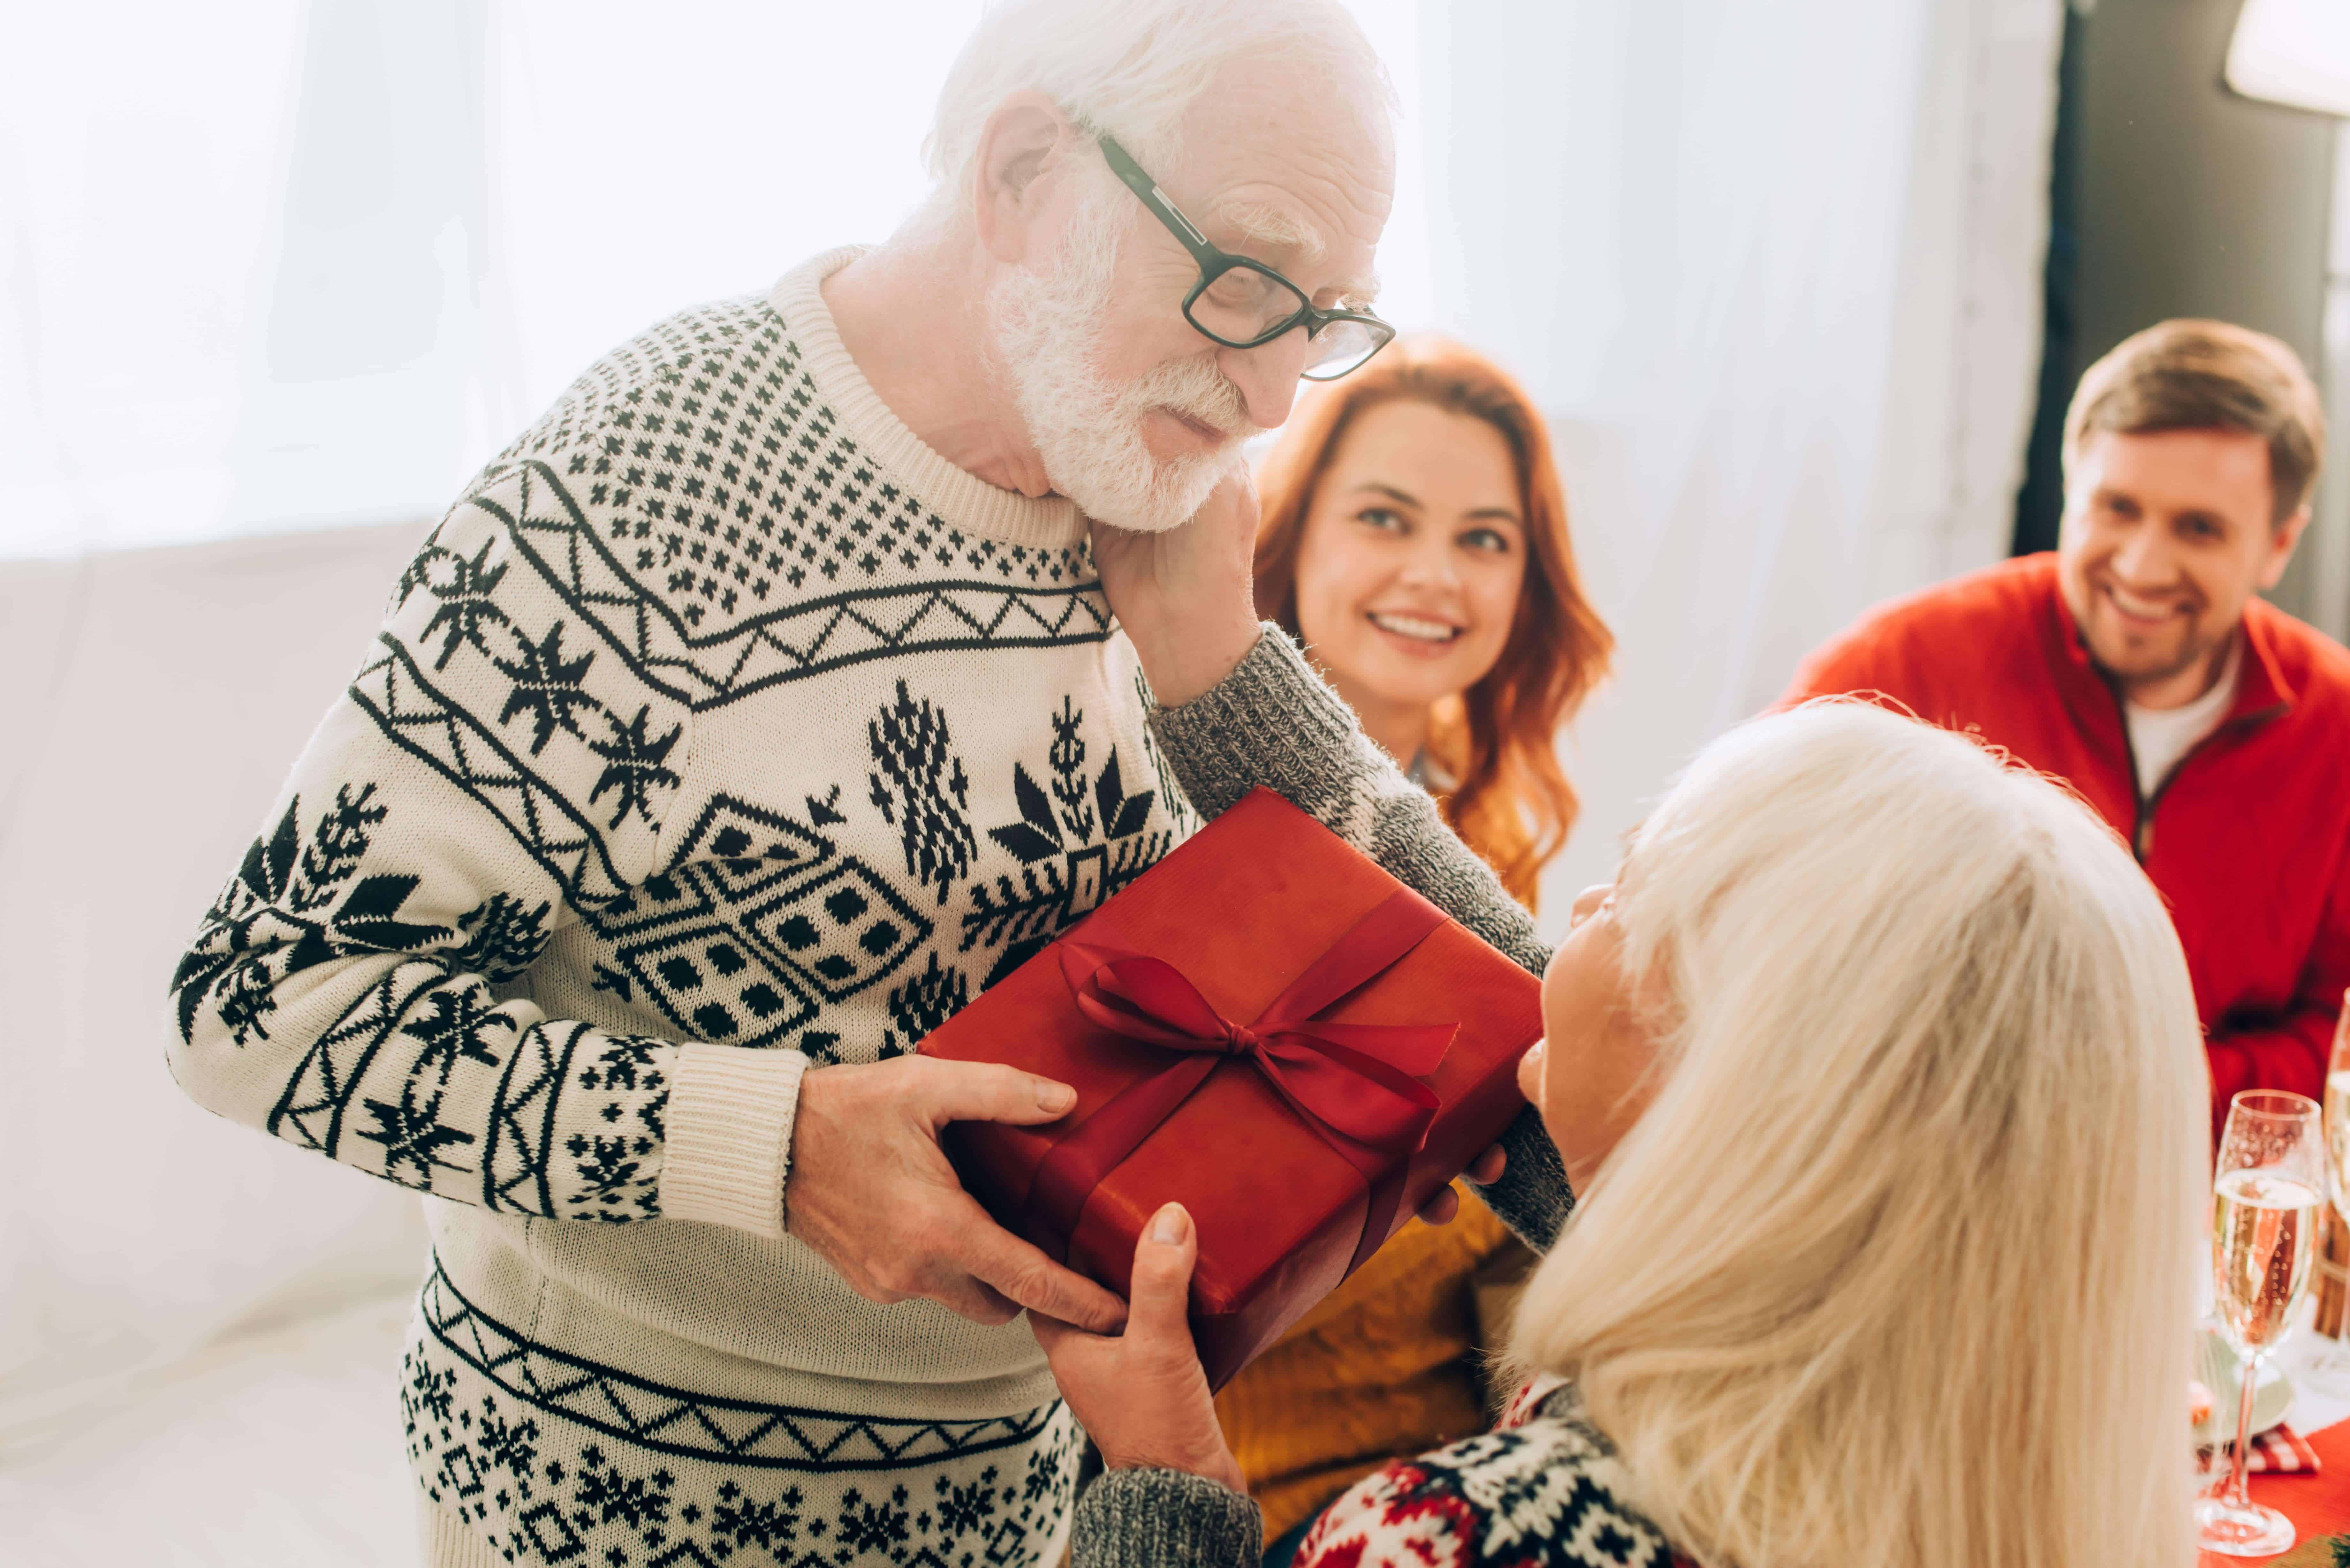 A grandpa is receiving gifts from his family